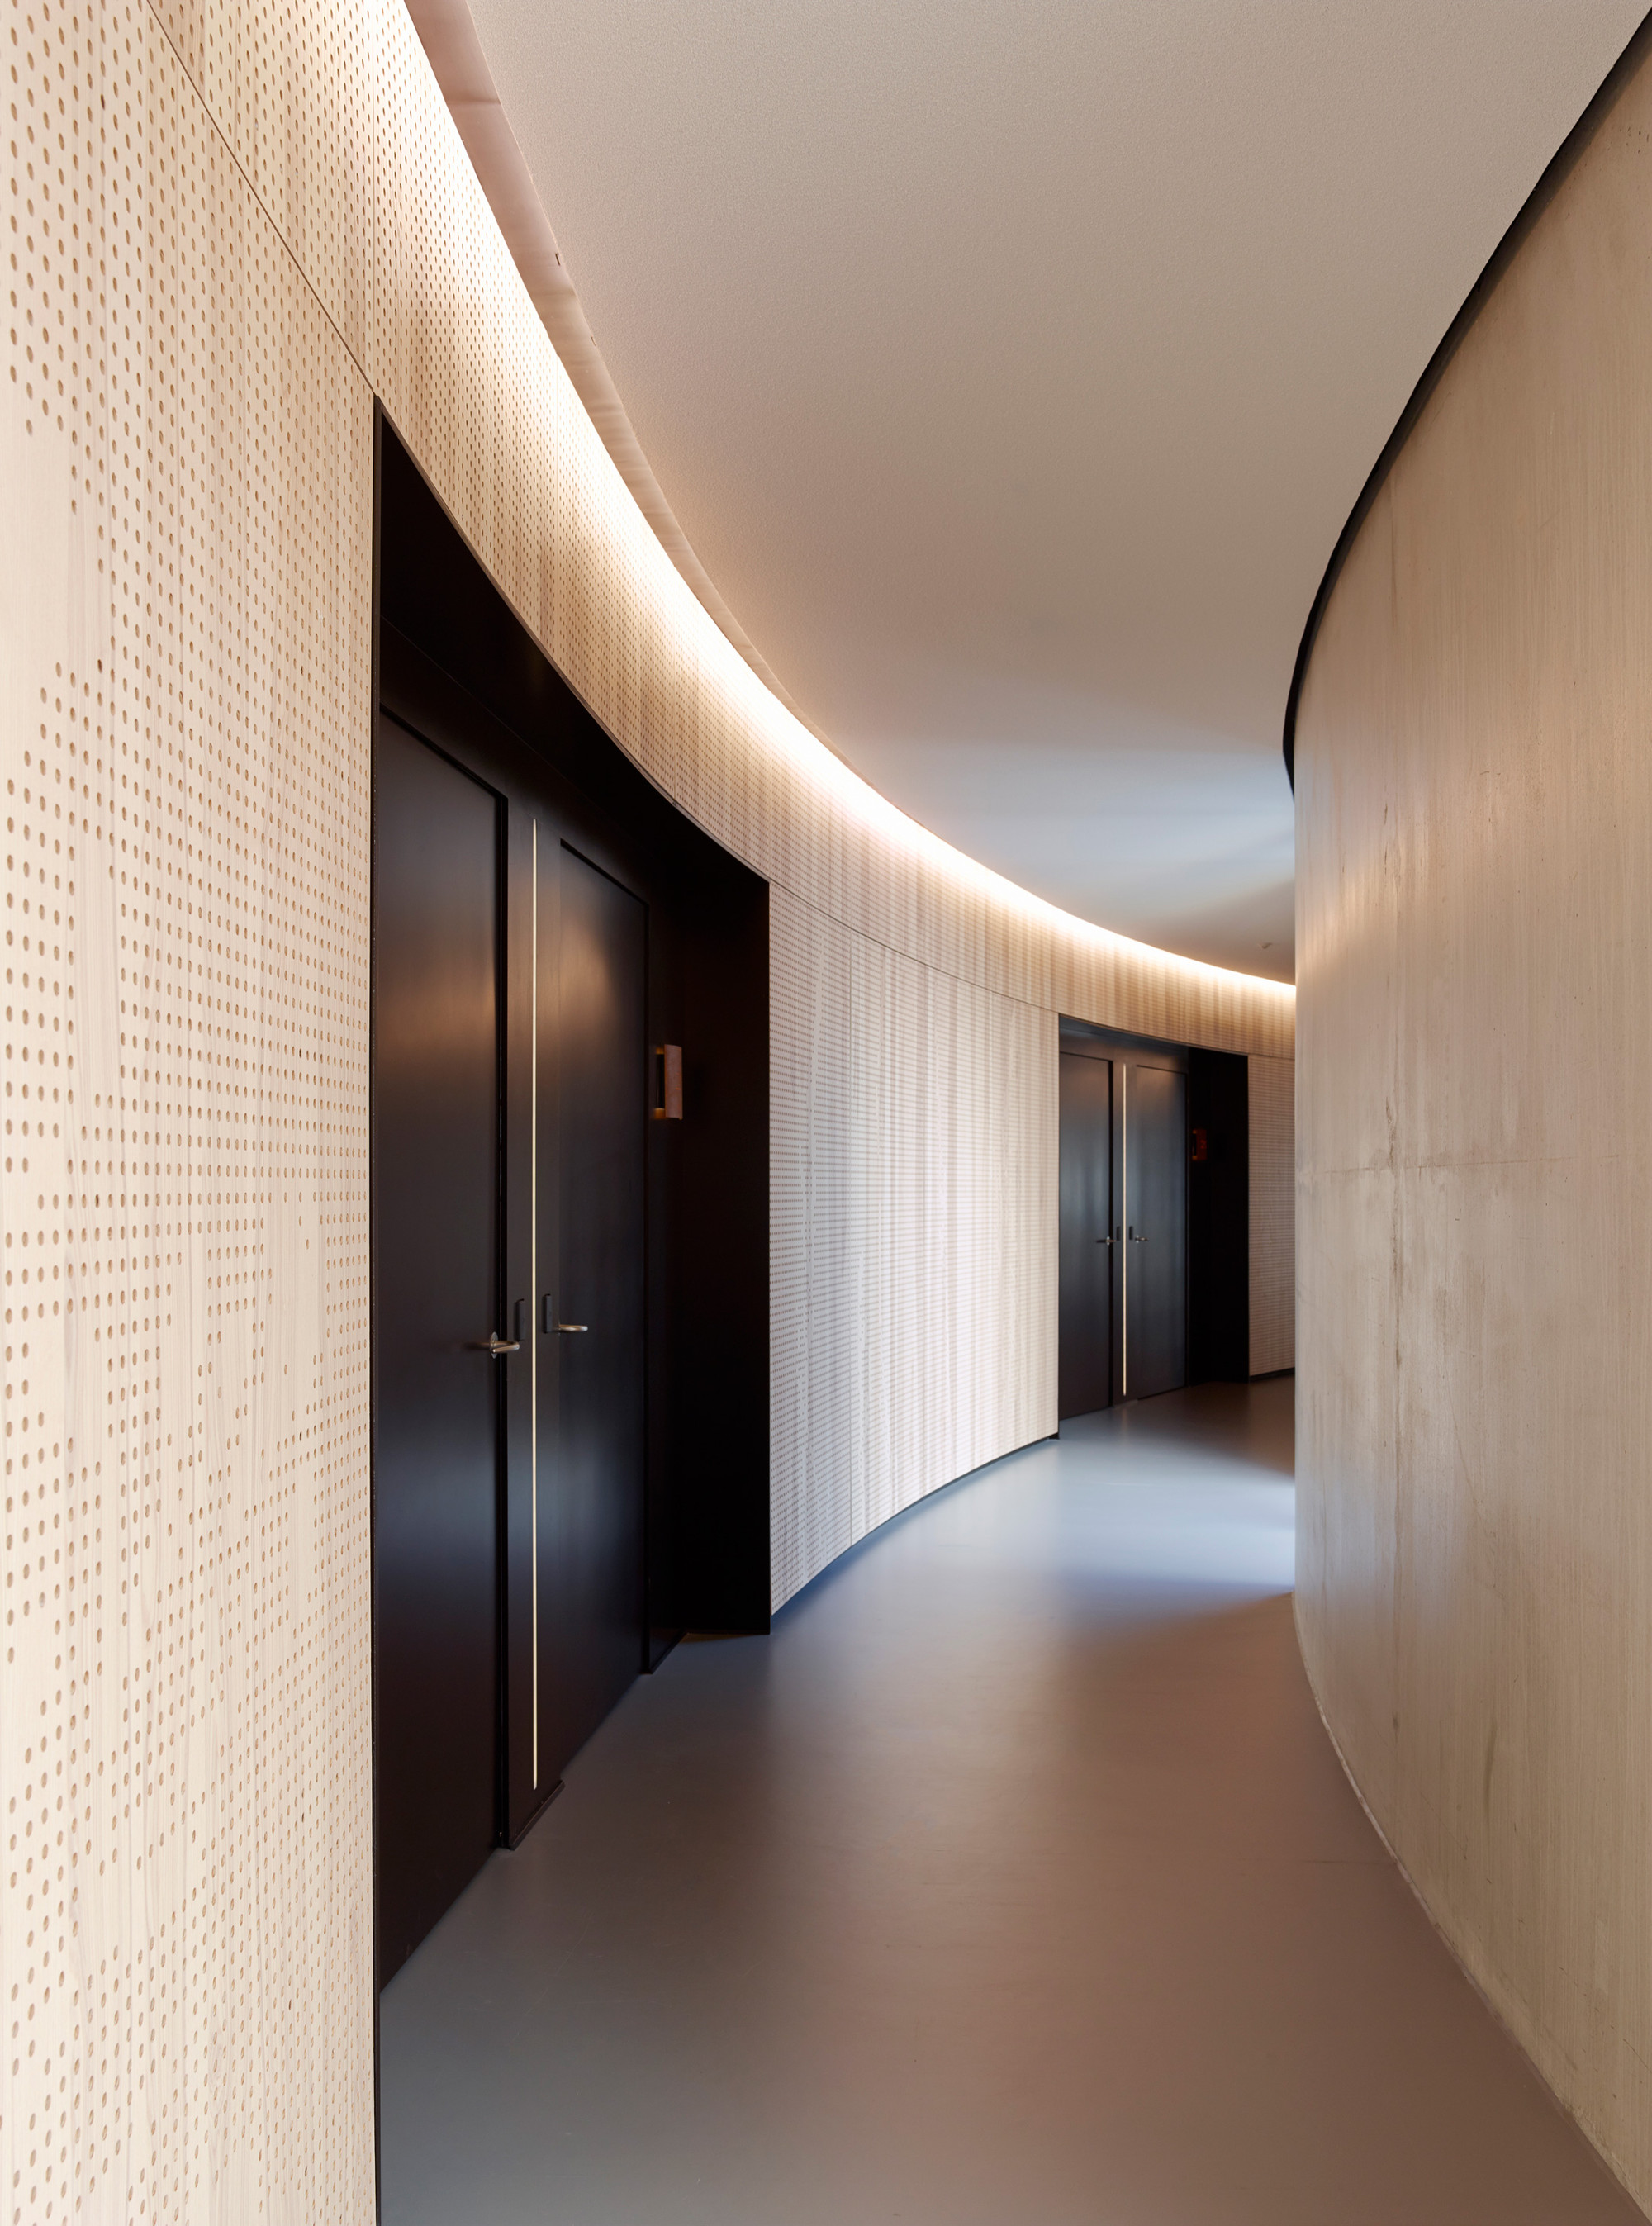 Gallery of ecco s hotel dissing weitling architecture 8 for Archi light